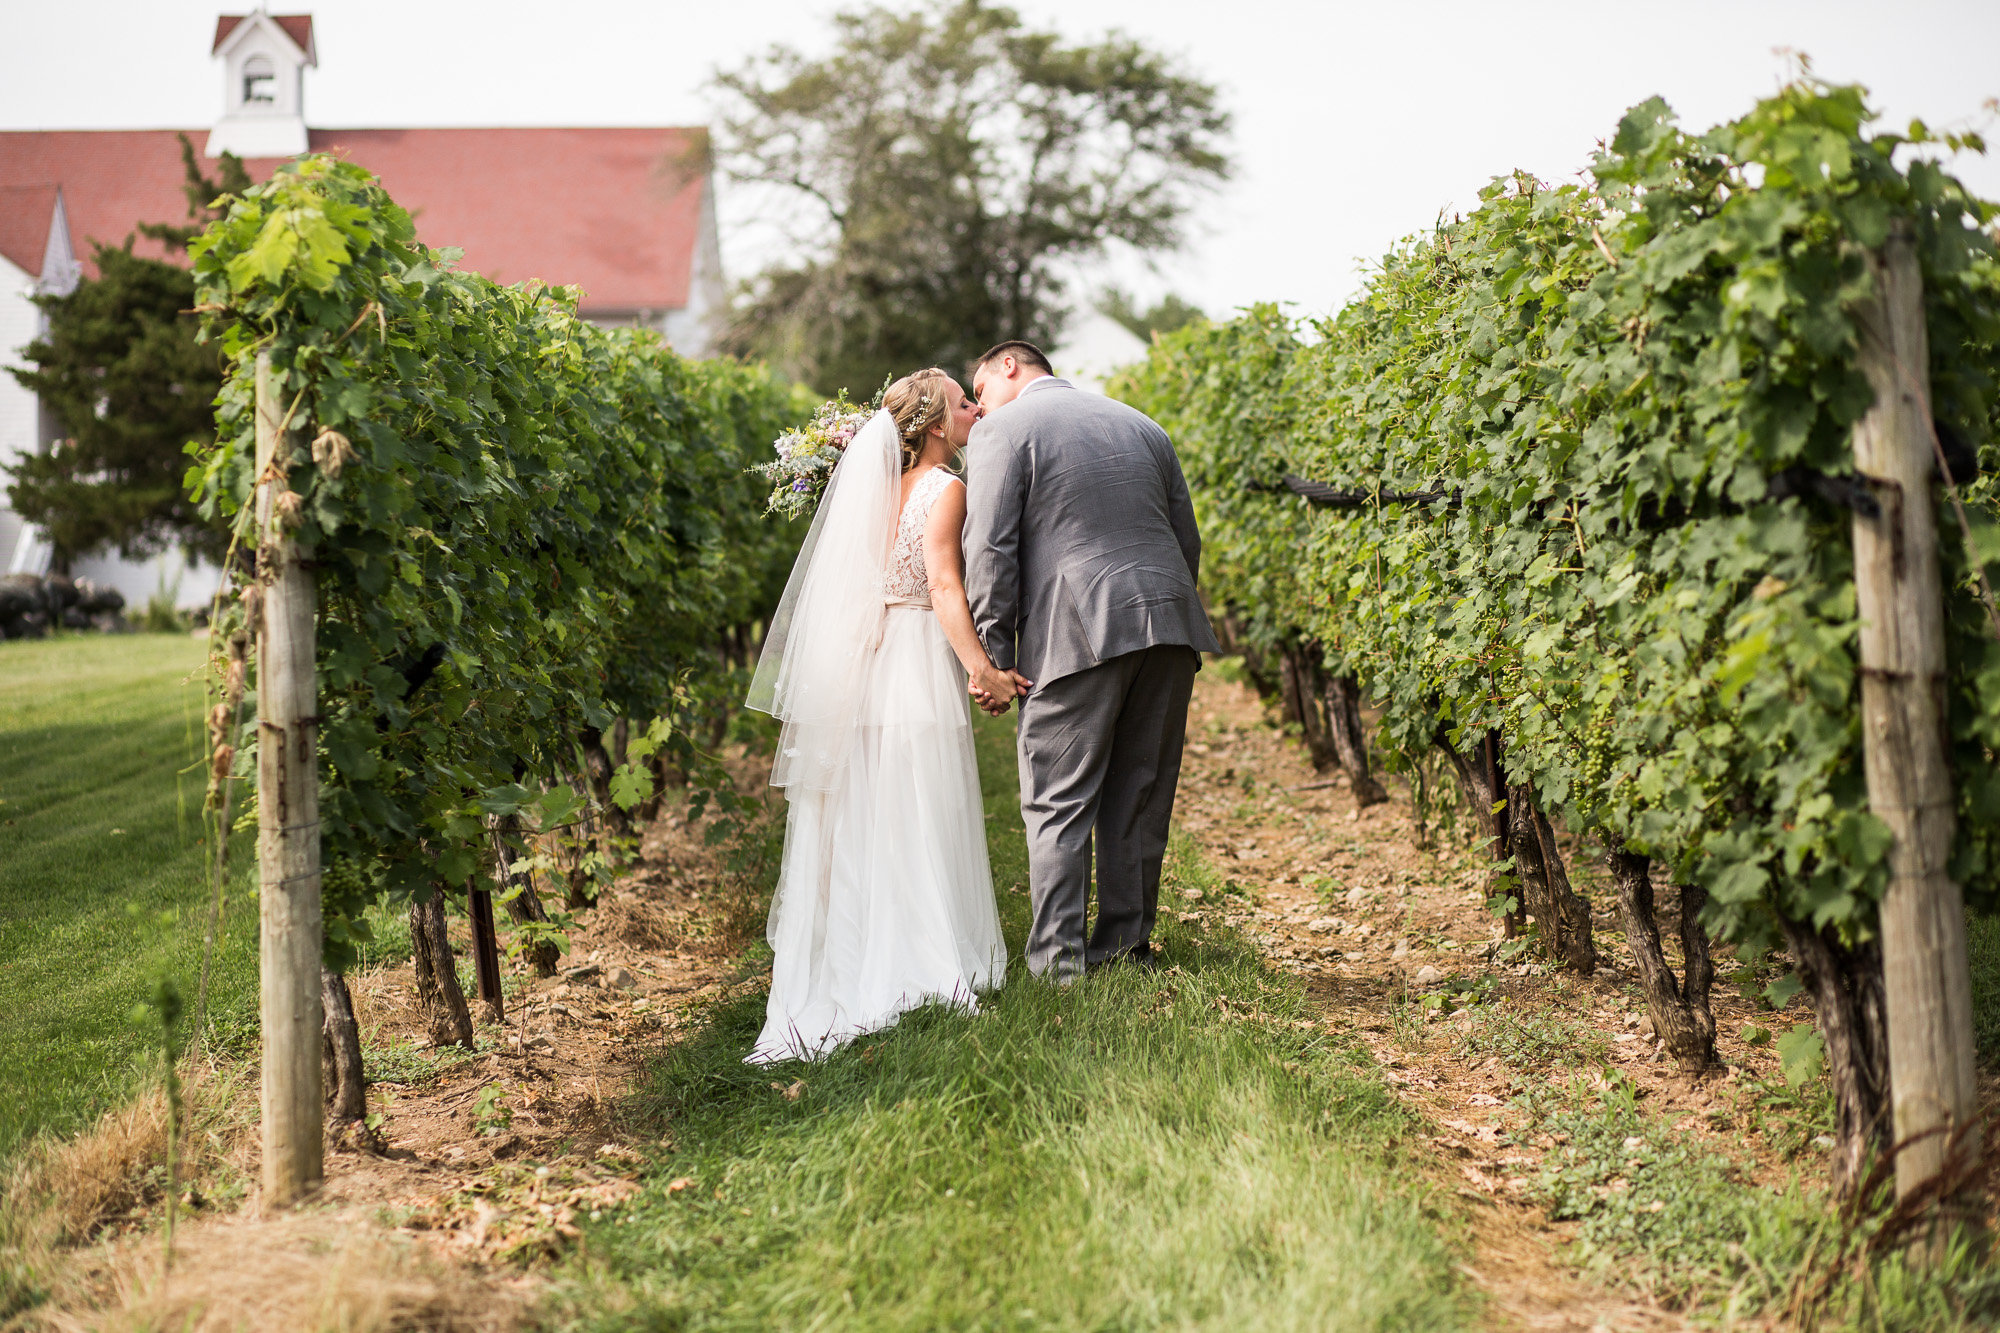 0502-amyrex-wedding-lowres-Jonathan-Edwards-Winery